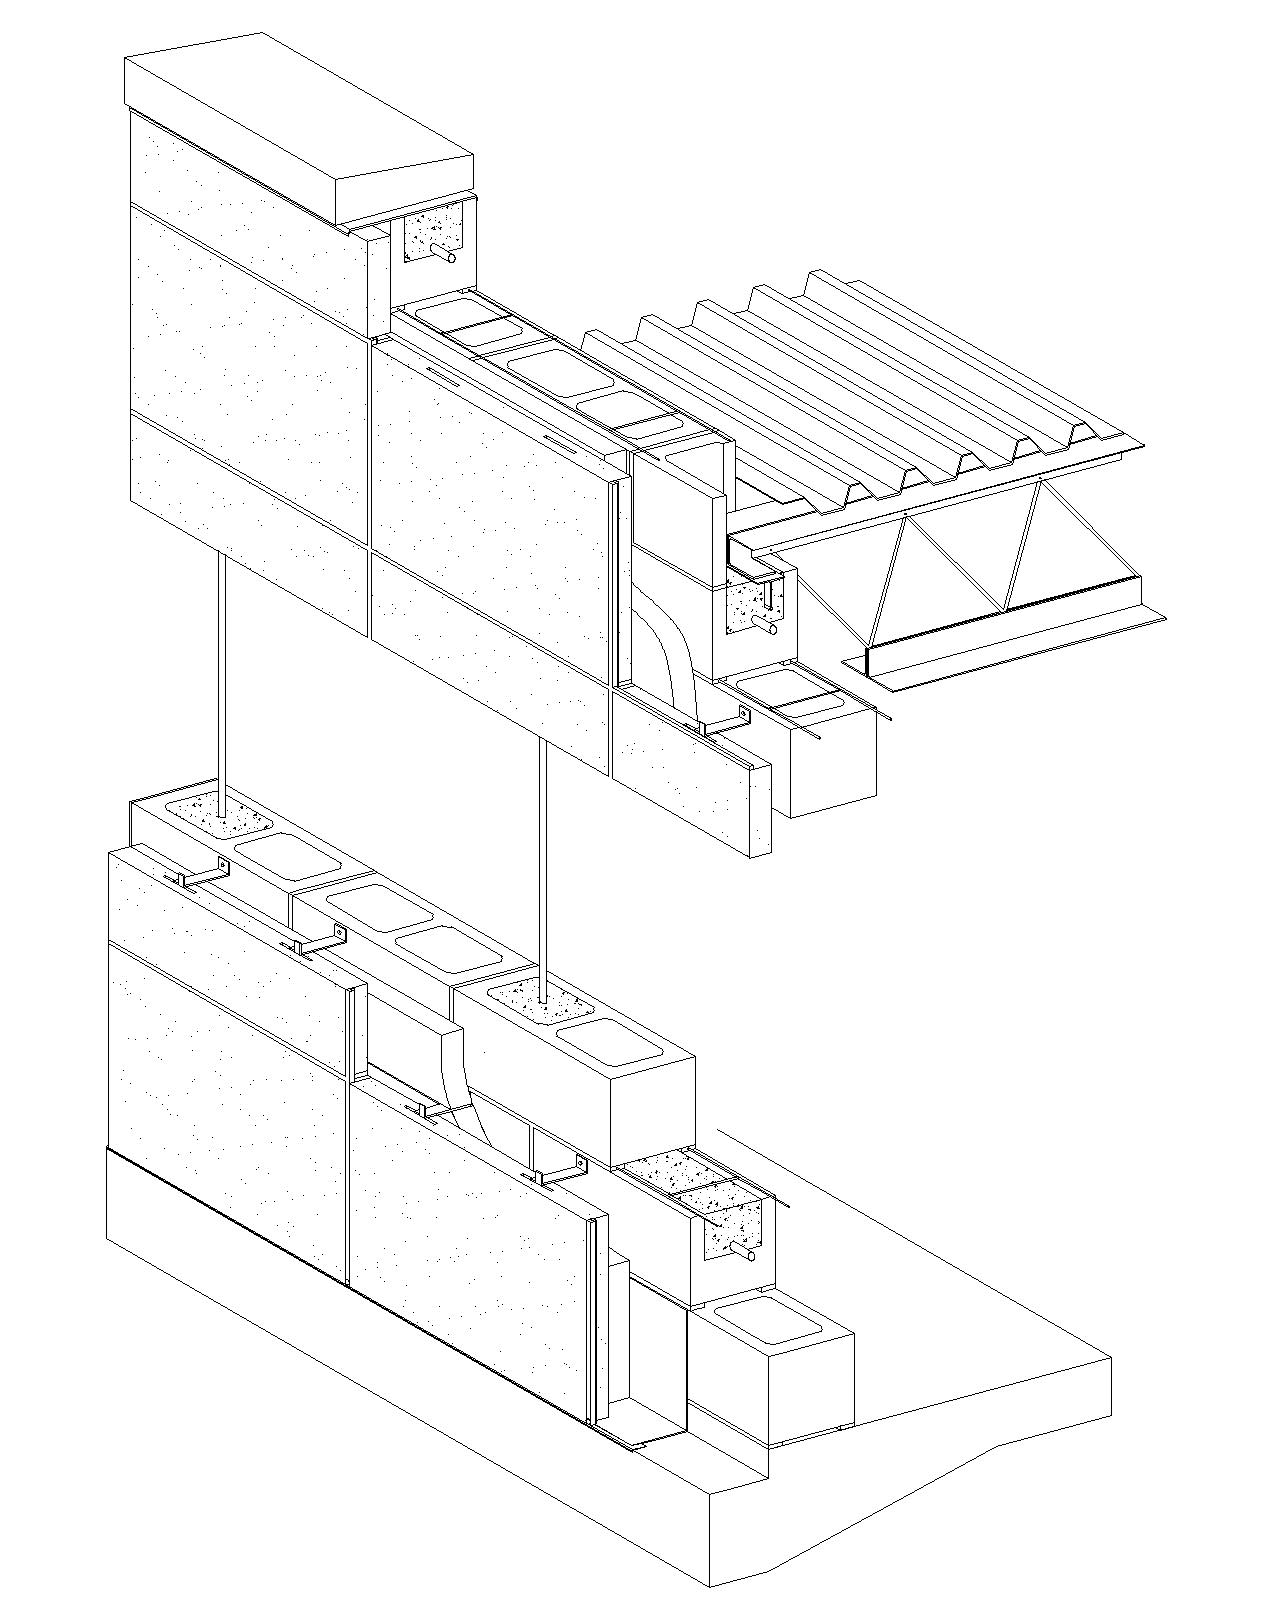 Lighting Basement Washroom Stairs: Concrete Drawing At GetDrawings.com